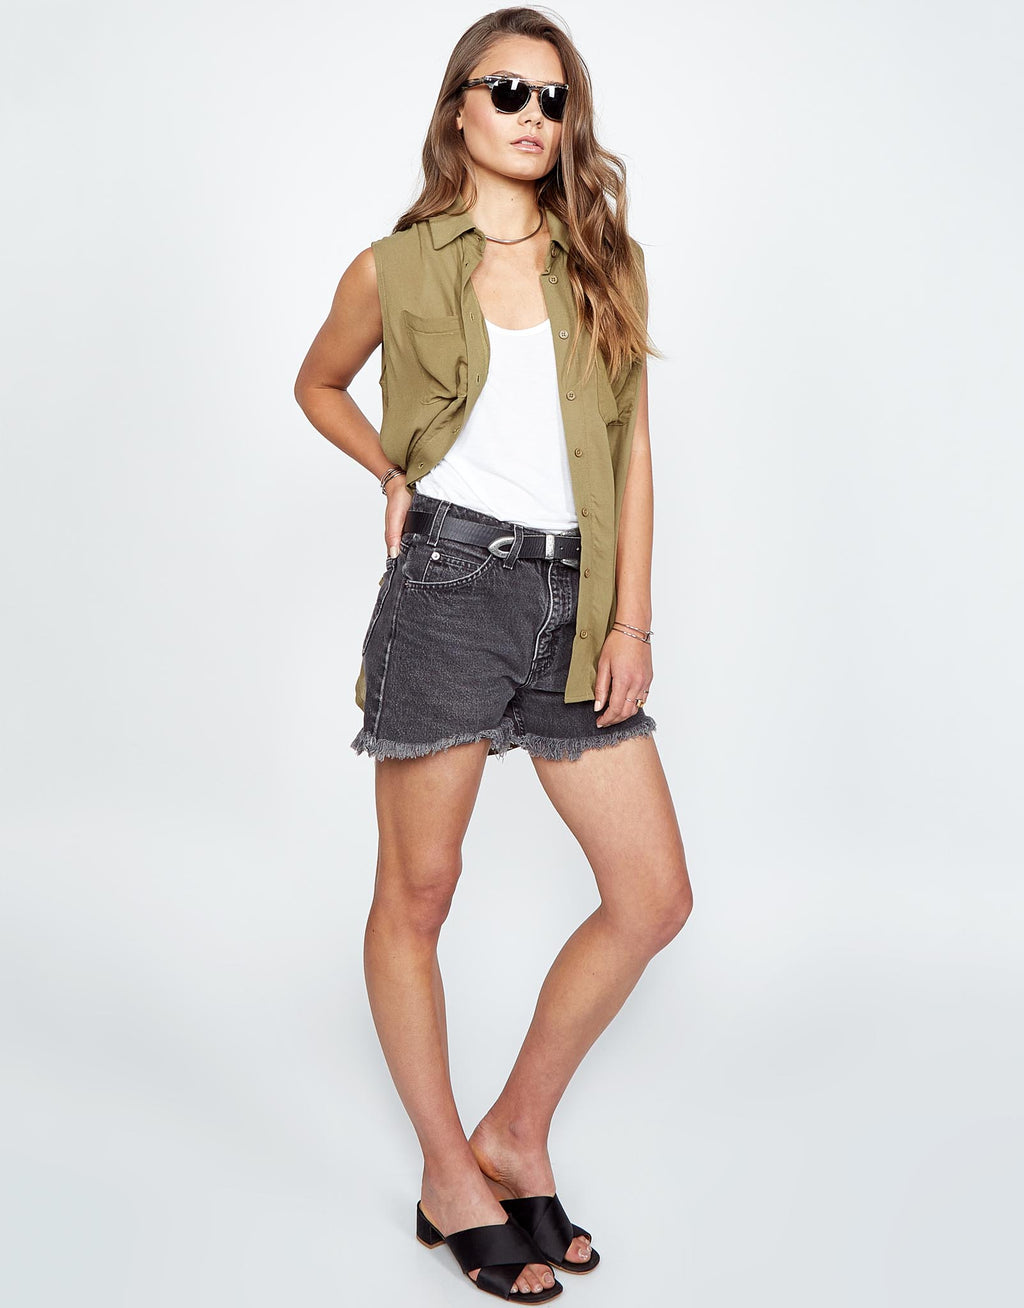 Samson Sleeveless Top